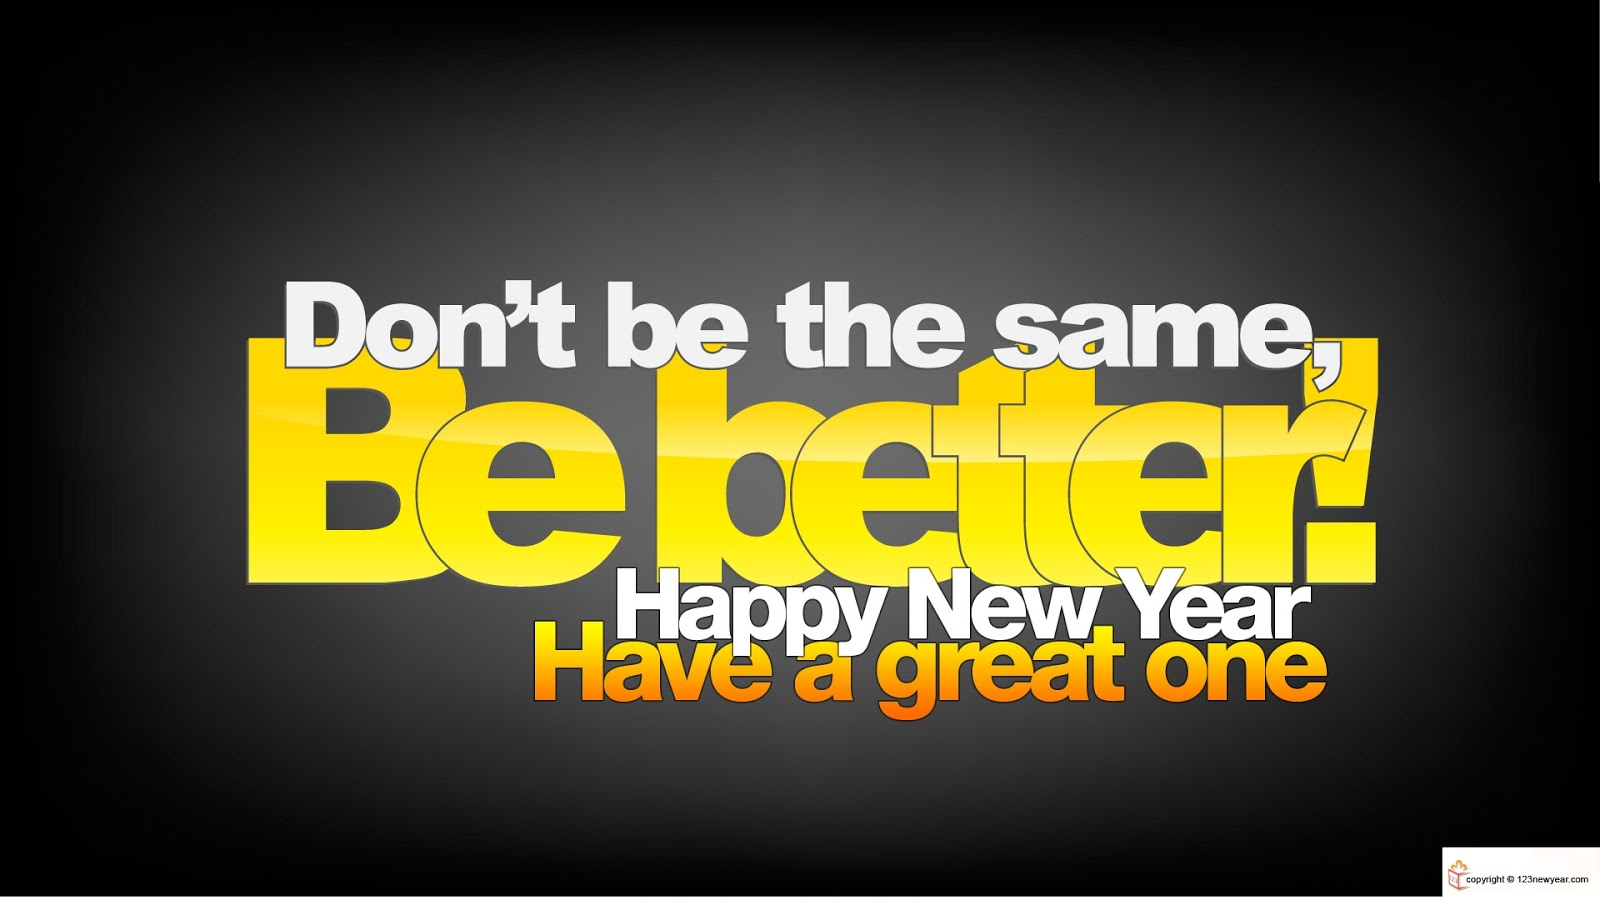 new year wishes images 2018 best new year wallpaper 2018 new year message wallpaper 2018 new year party pictures 2018 new year quotes images 2018